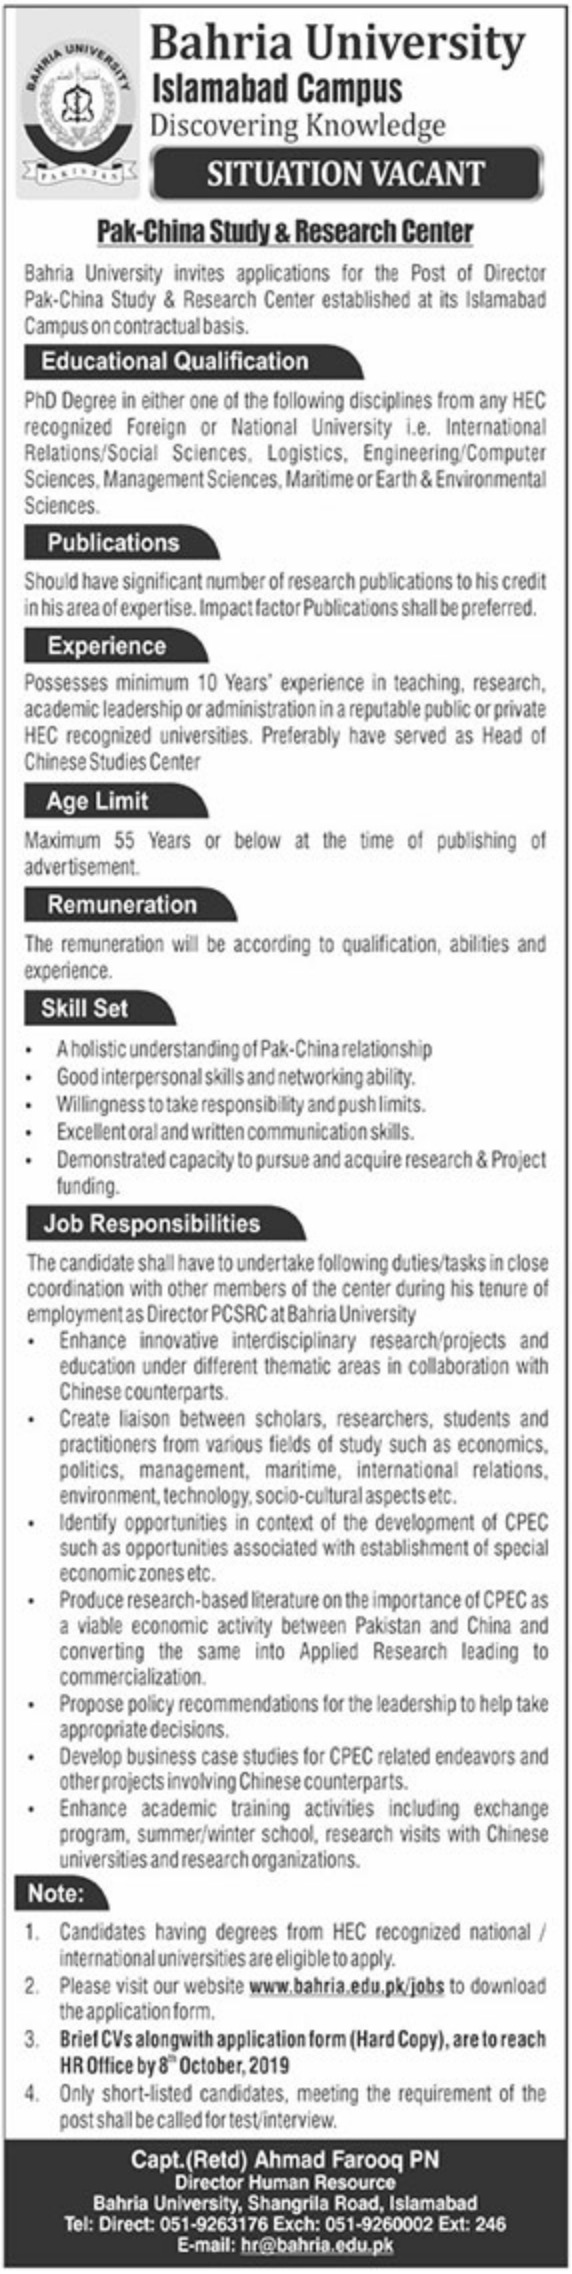 Bahria University Jobs 2019 Islamabad Campus